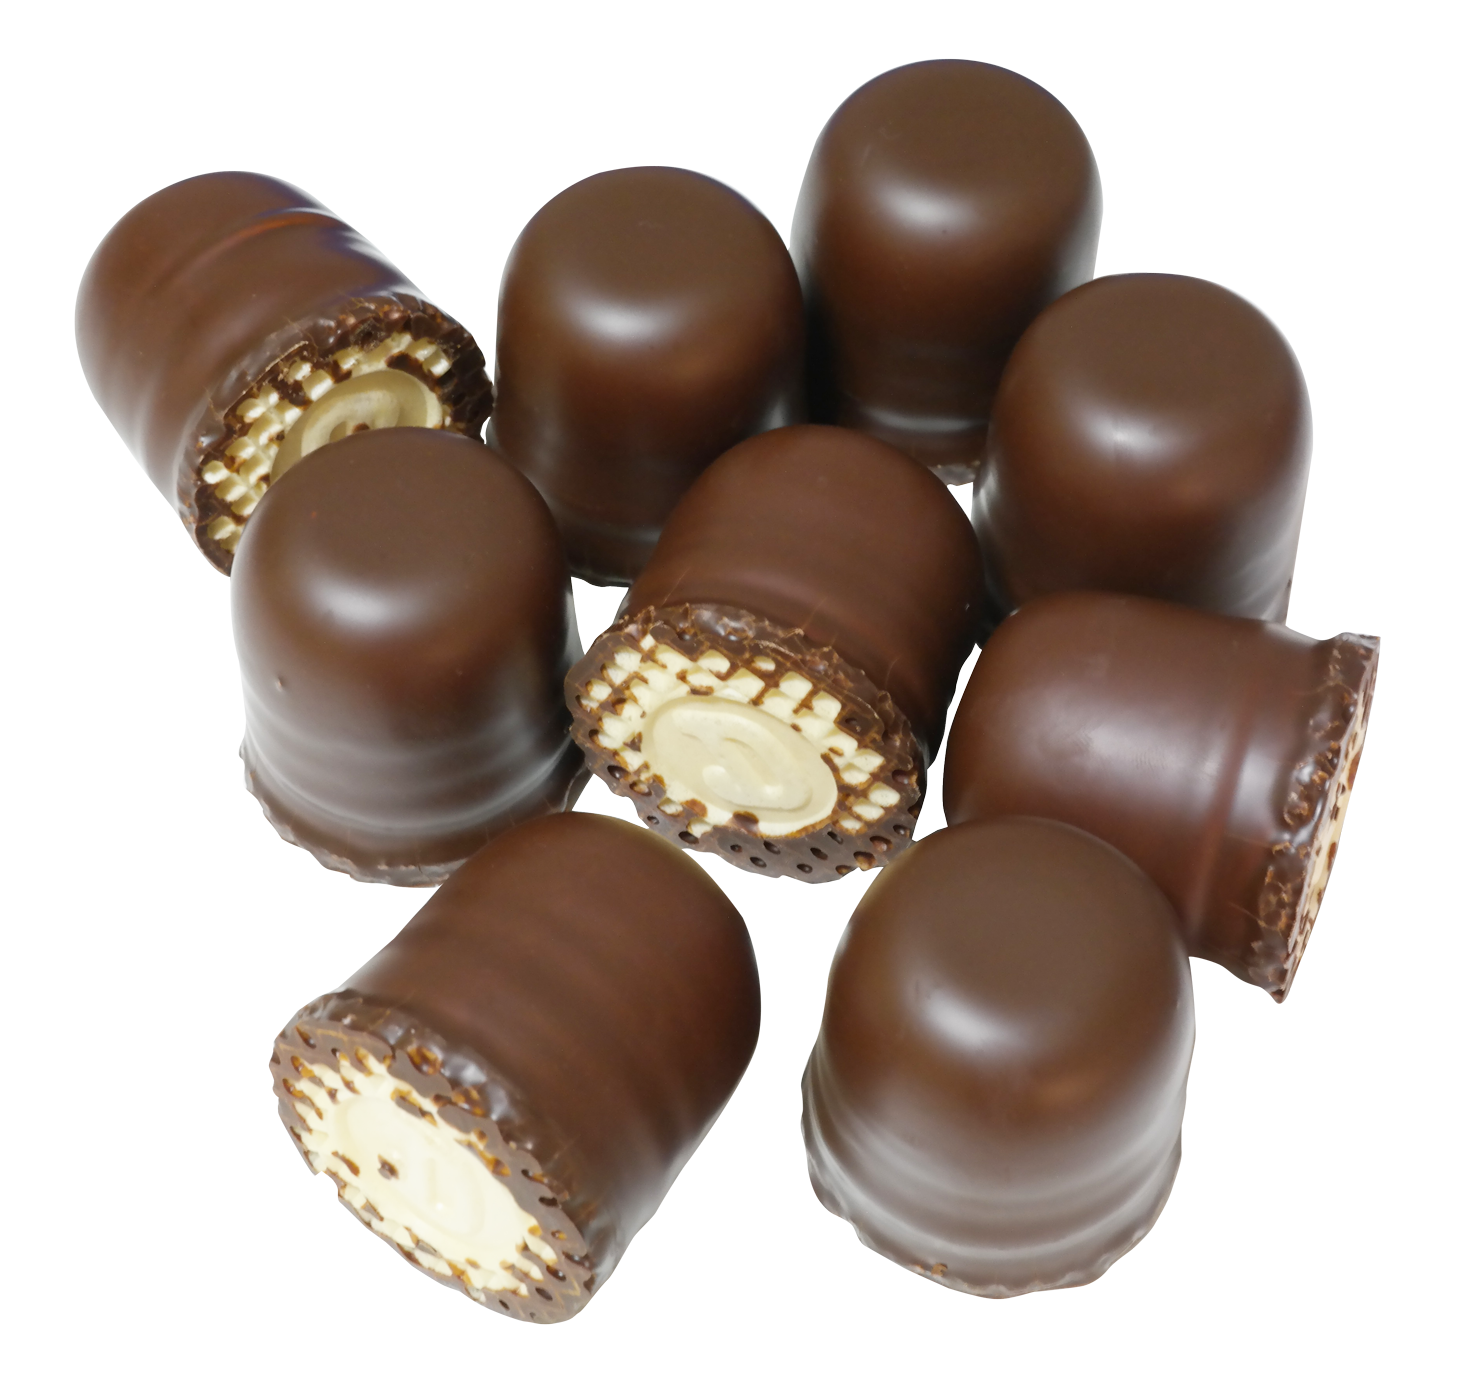 Chocolate PNG - 20255